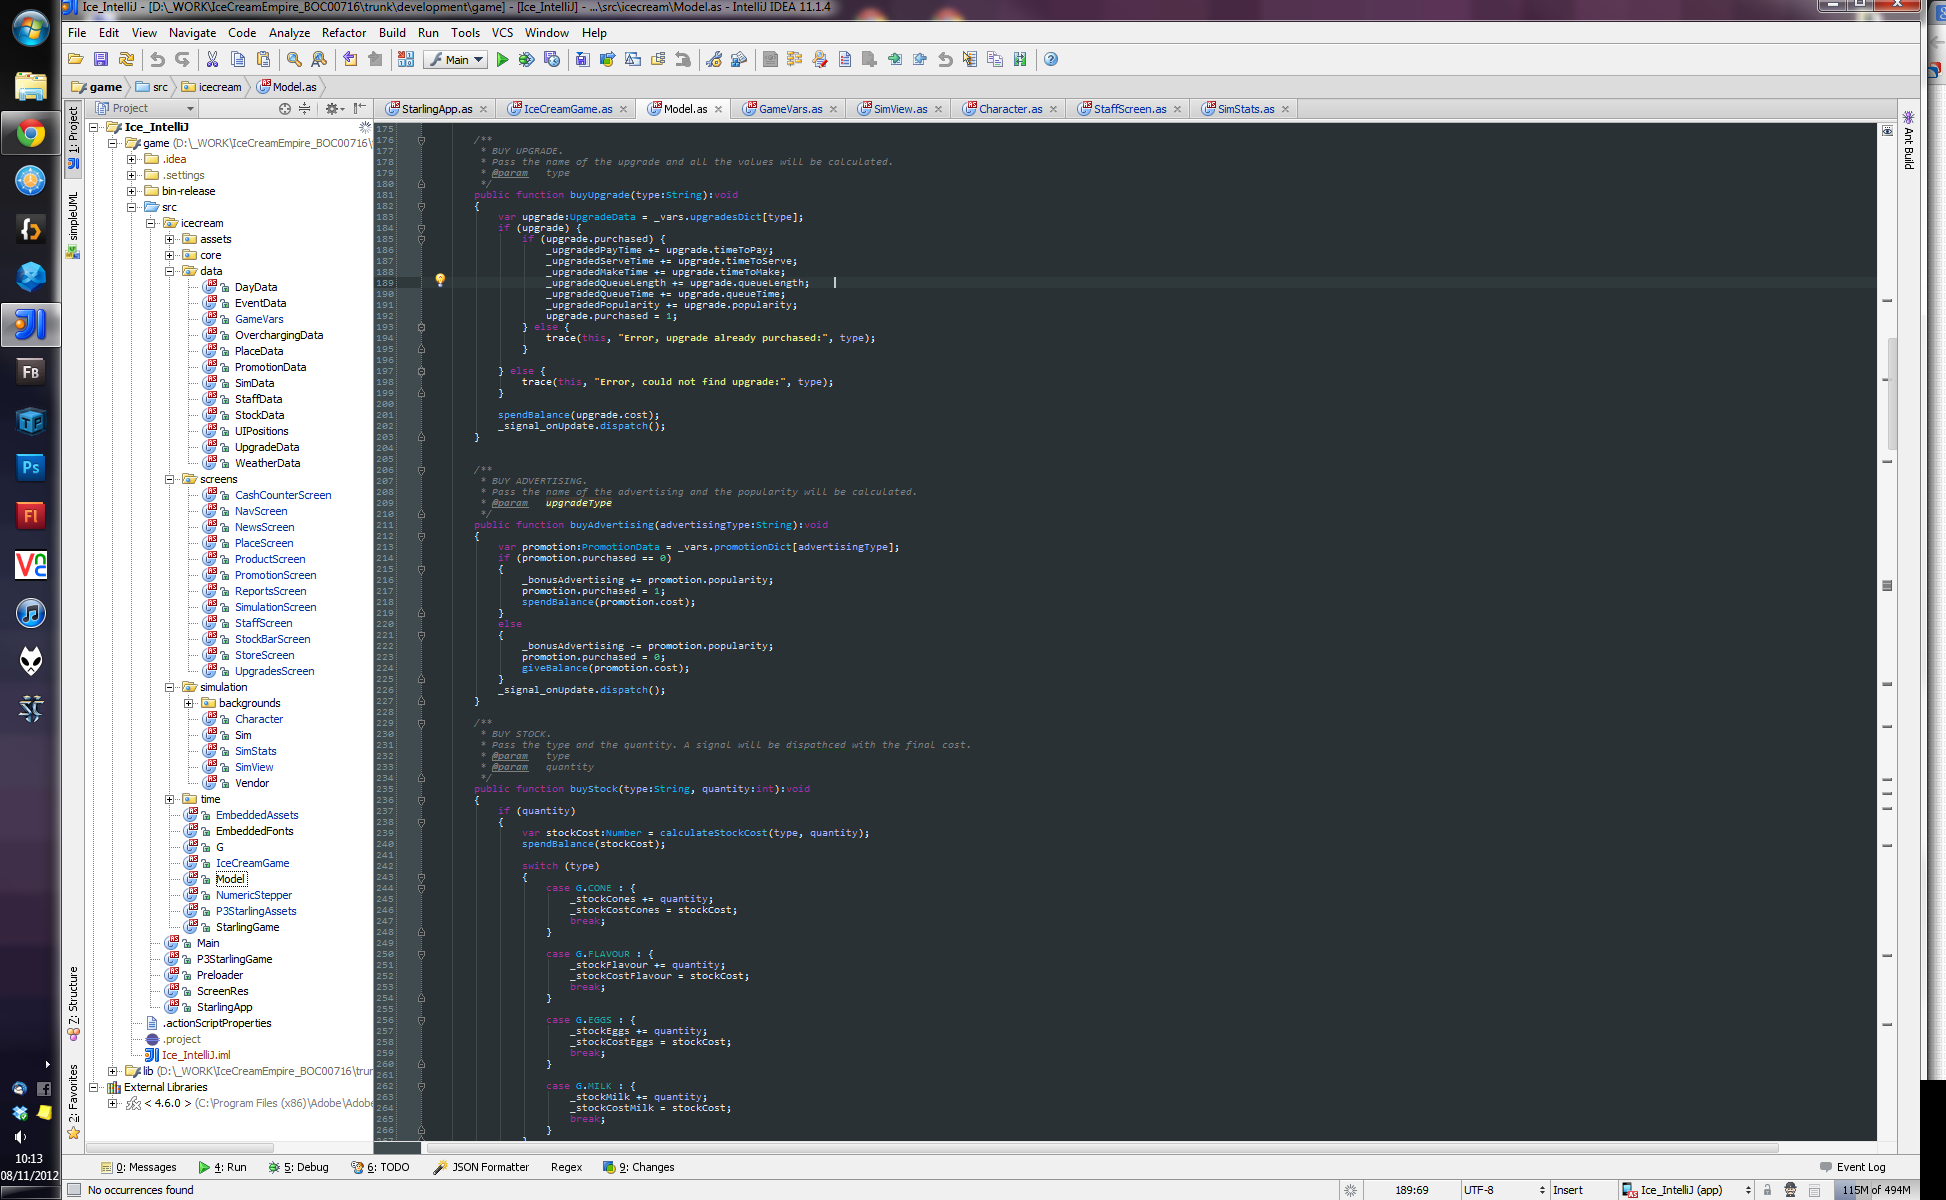 intellij_screenshot